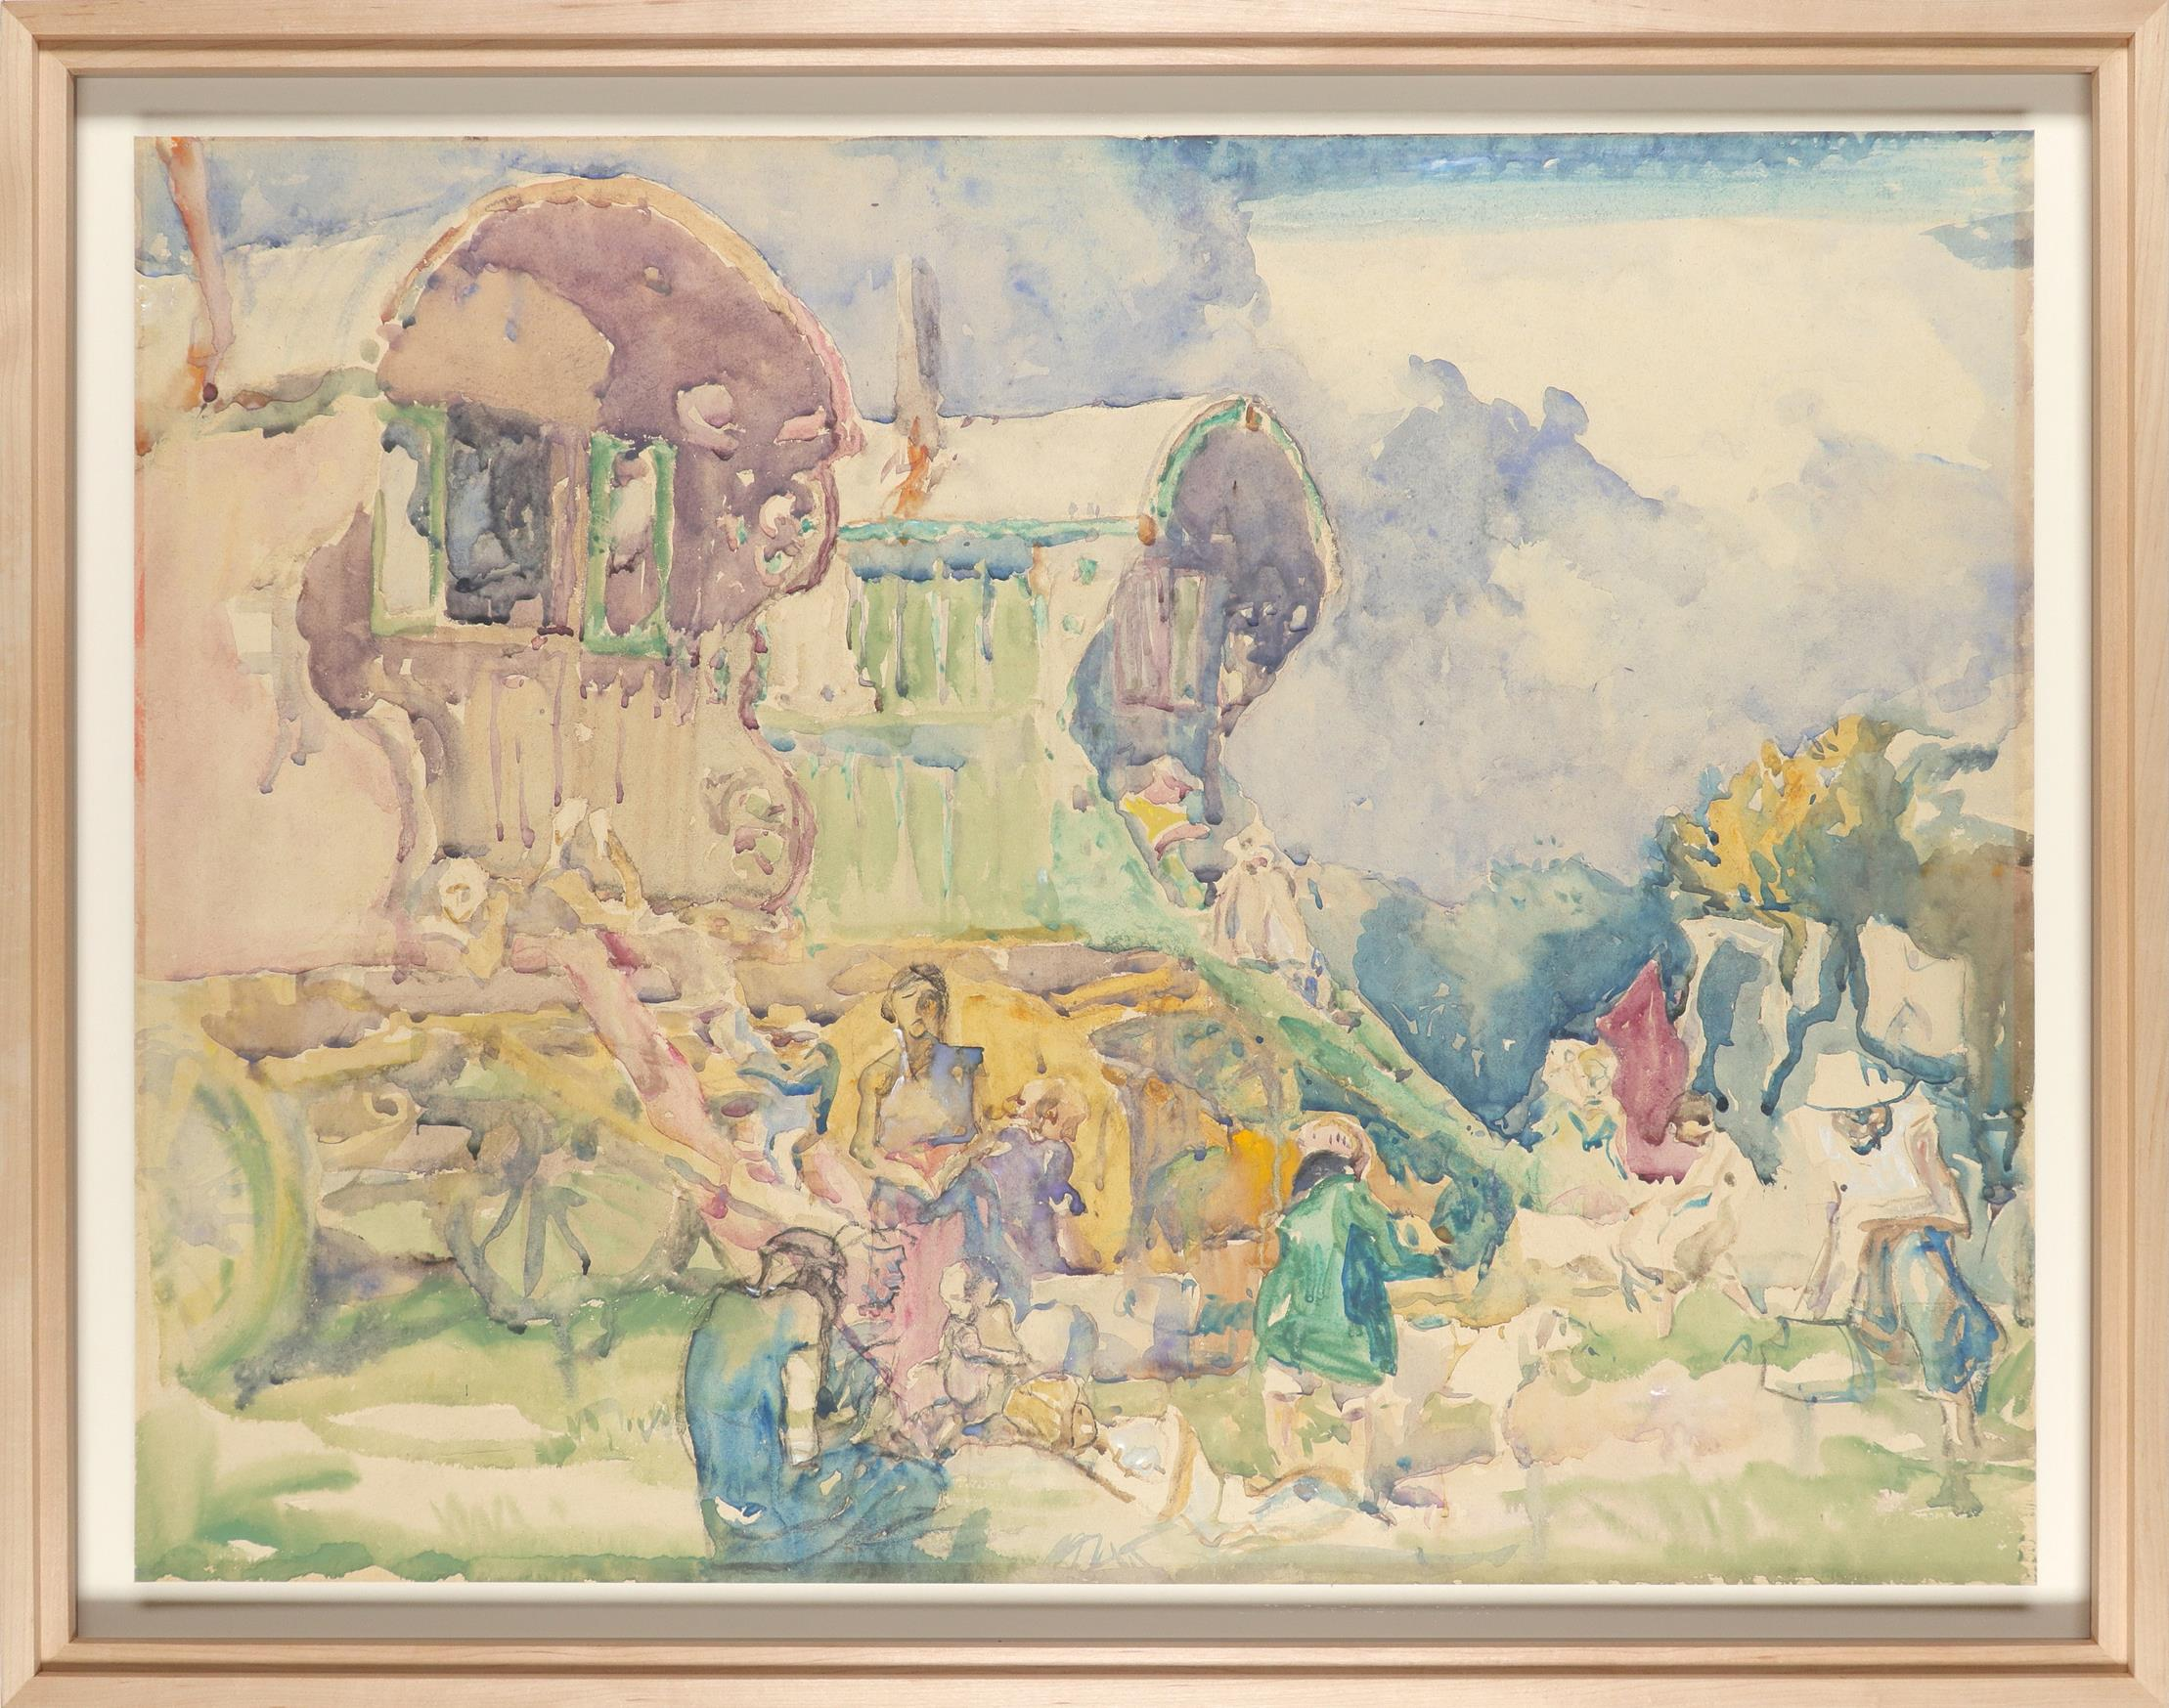 ‡Sir Frank Brangwyn RA, RWS, RBA (1867-1956) Gipsy caravan Watercolour 55.5 x 72.6cm Provenance: - Image 2 of 3